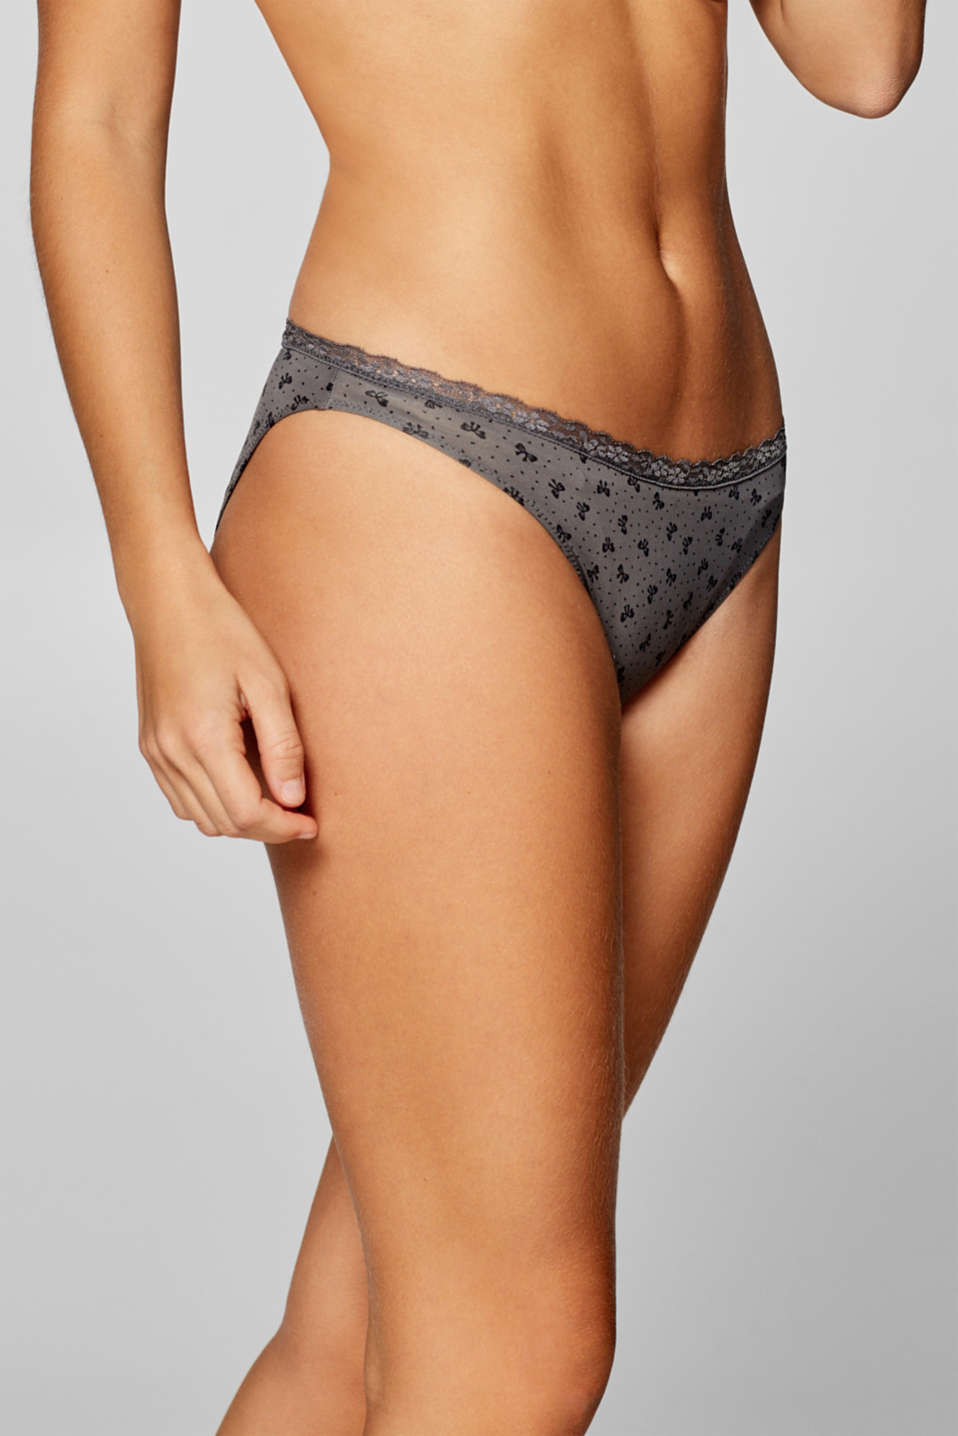 Esprit - Hipster briefs with a bow print